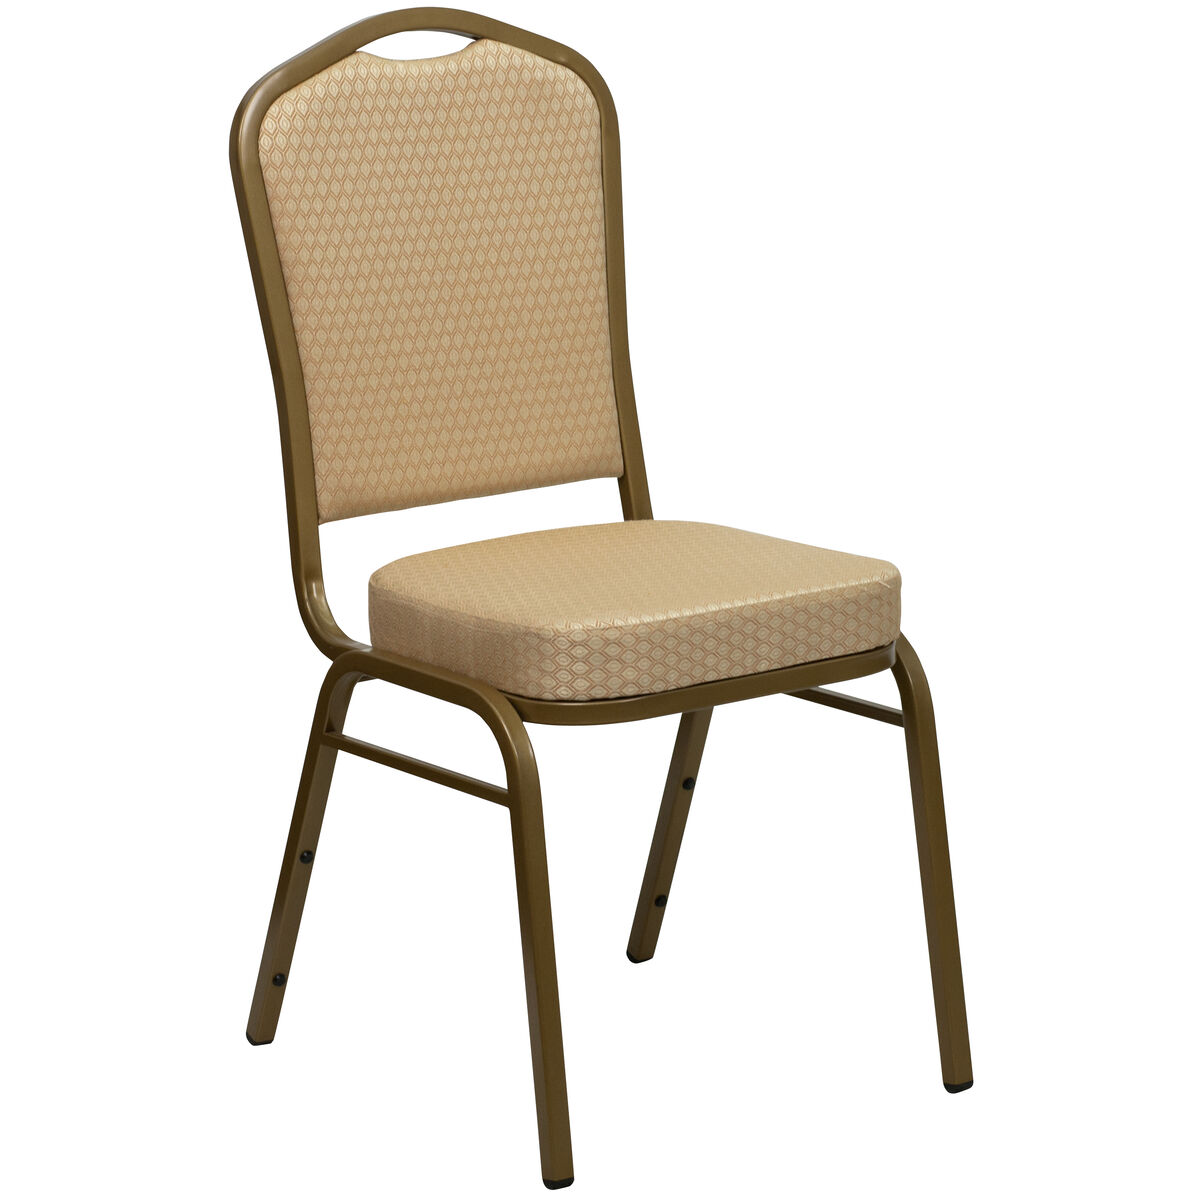 Crown Back Stacking Banquet Chair in Beige Patterned Fabric - Gold Frame